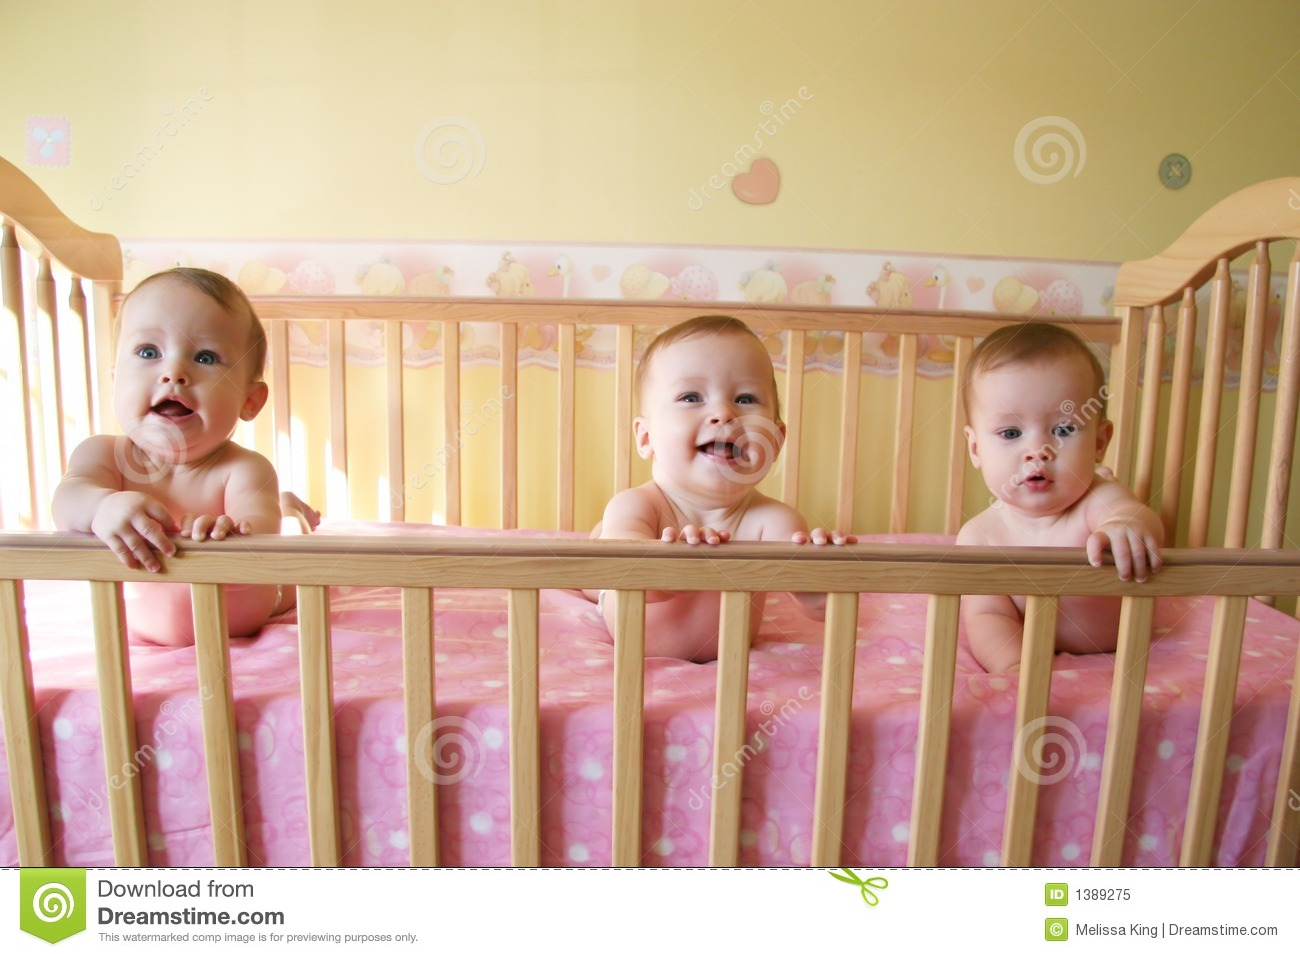 Crib for triplet babies - Baby Girls In Crib Triplets Royalty Free Stock Photo